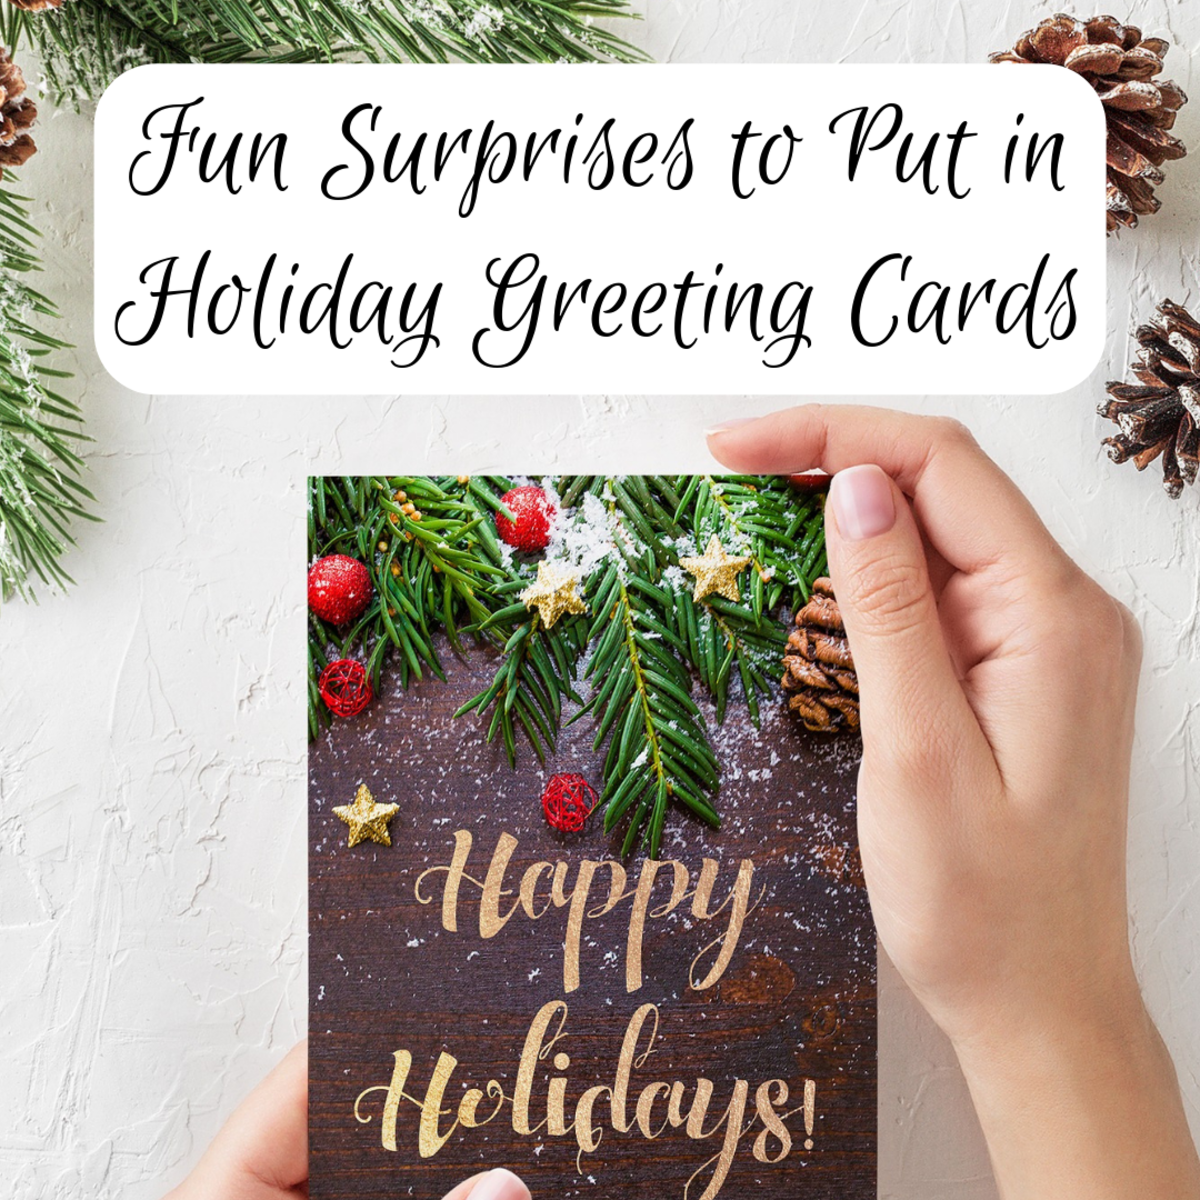 Unique Things to Put in Christmas and Holiday Cards